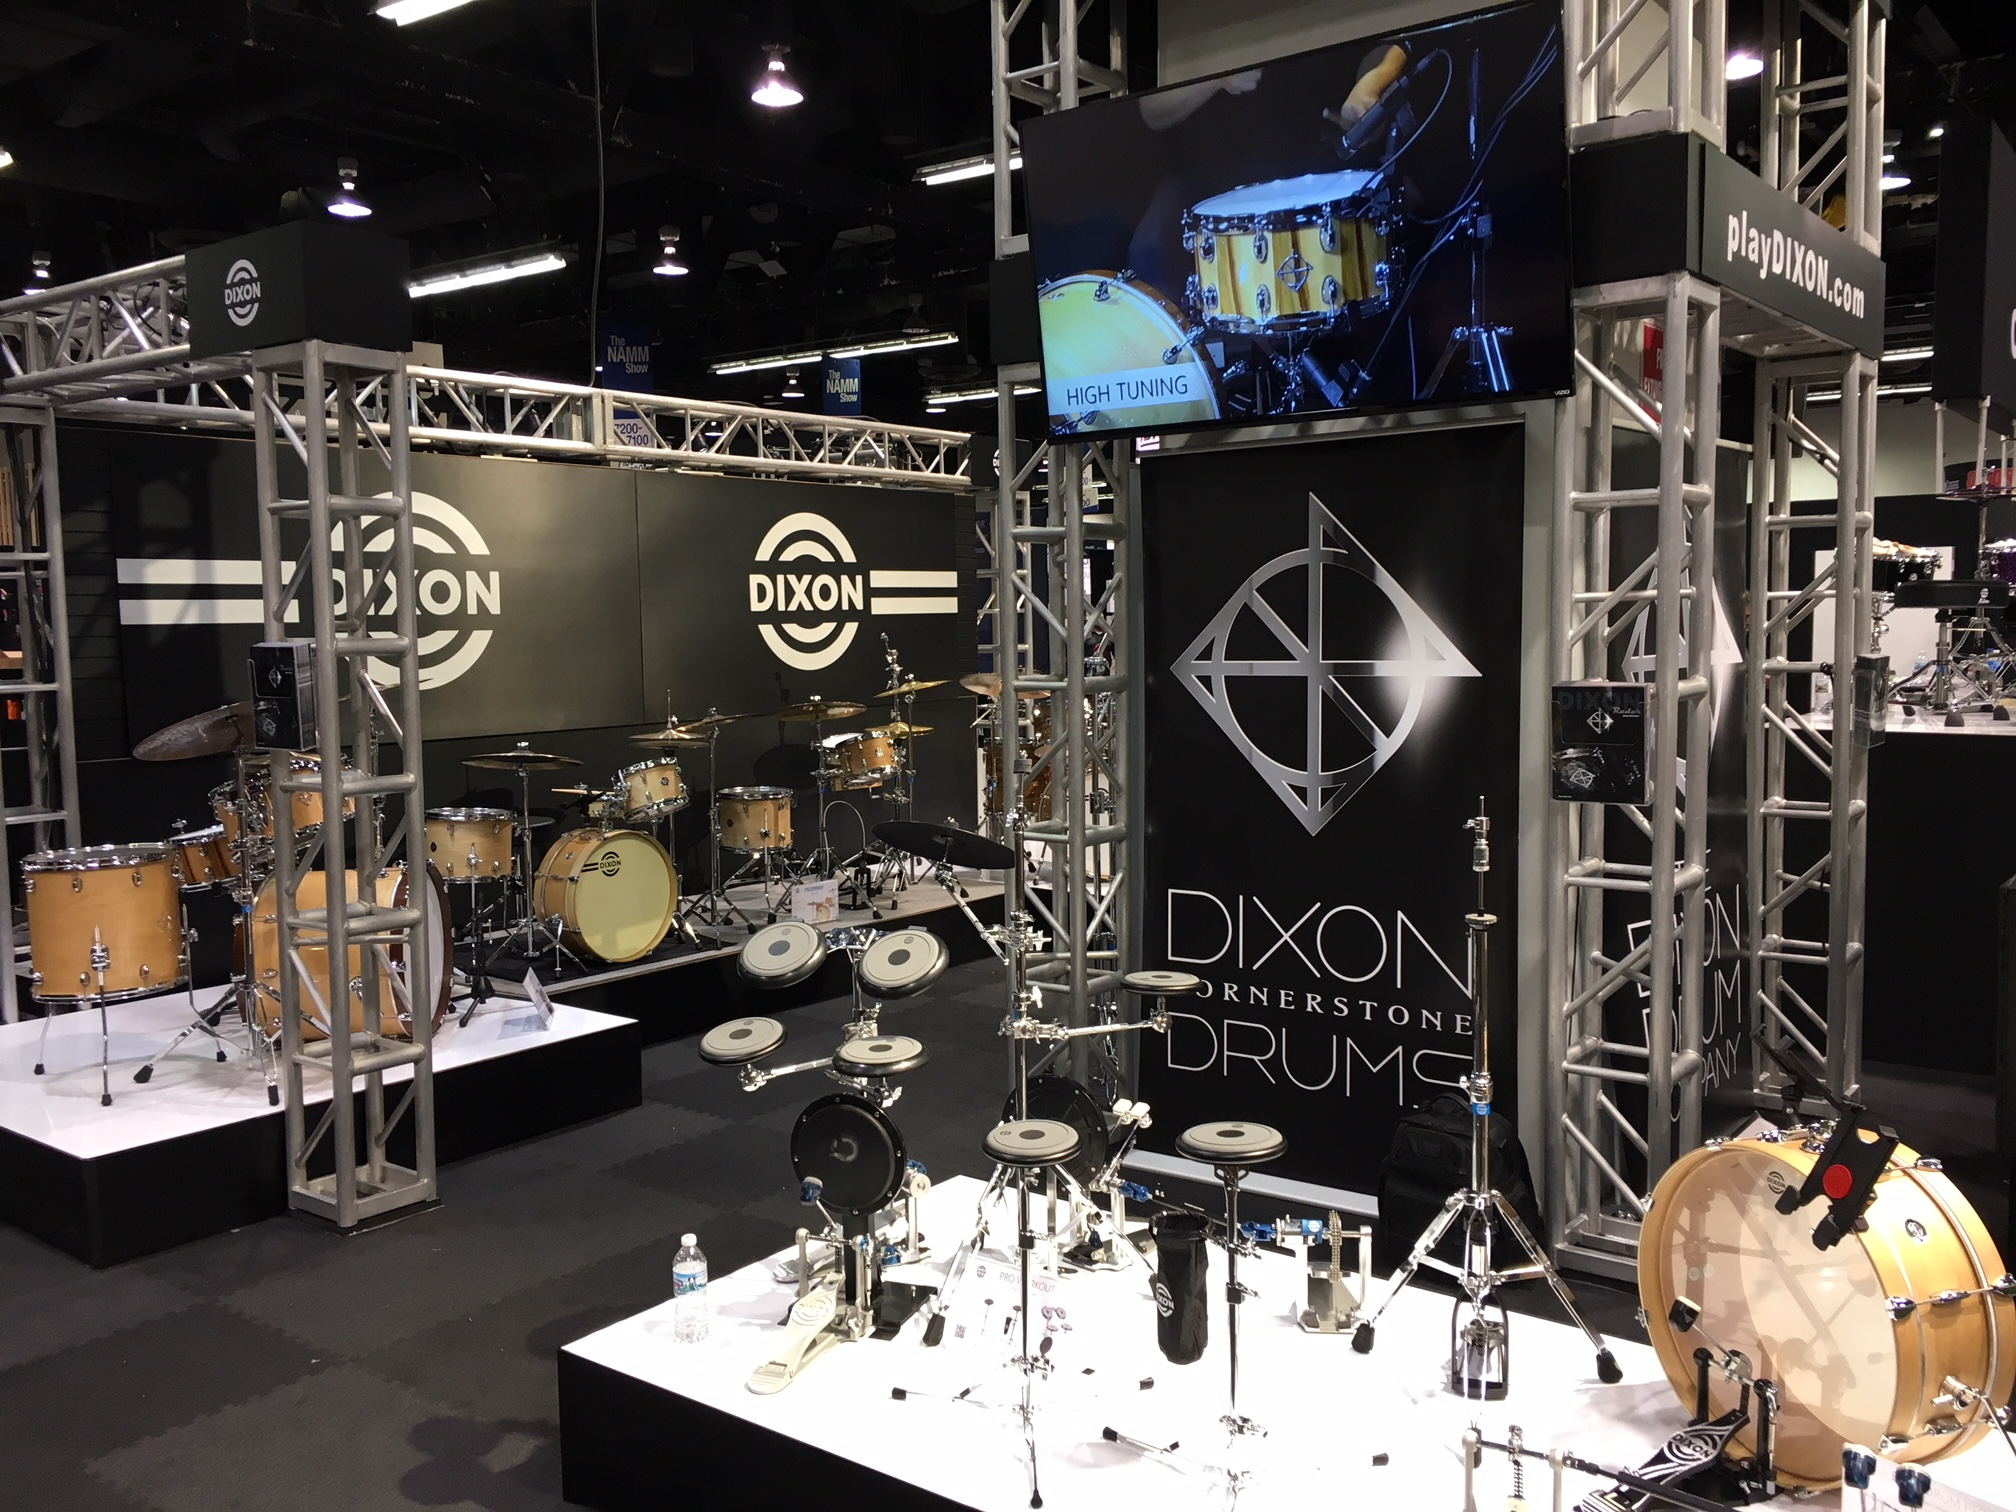 St Louis Music Upgrades 2 000 Sq Ft Trade Show Display With Greatmats Carpet Tiles